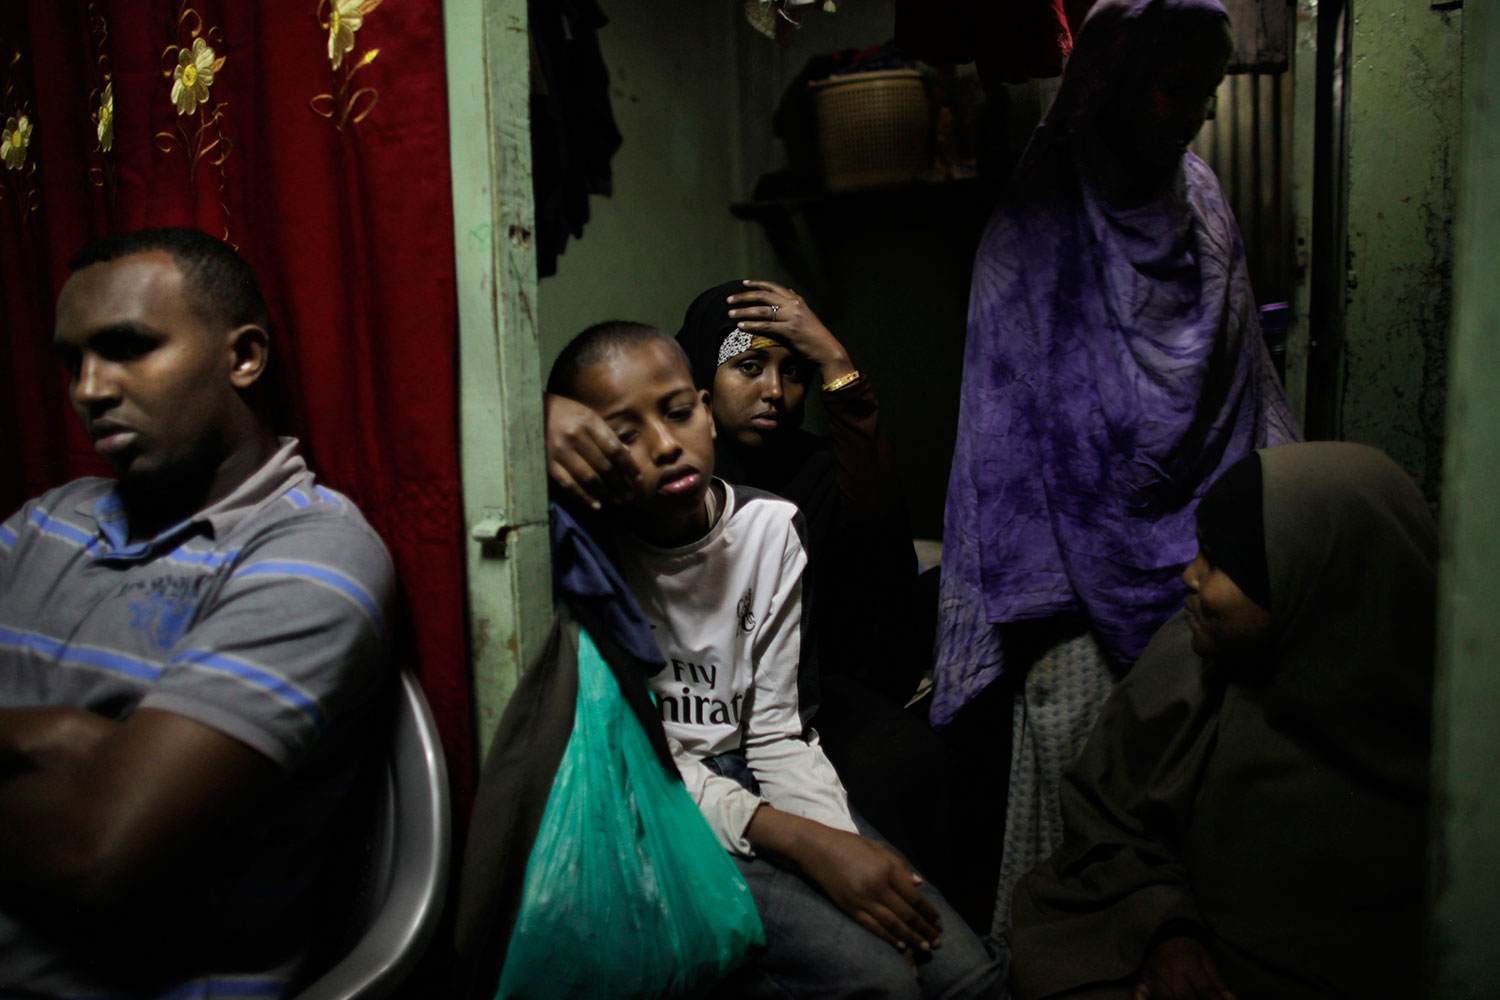 Nairobi, Kenya. August. 4, 2010.                               Relatives of alleged Somali pirate Ahmed Adan Warsame, who is currently awaiting trial in Germany after the hijack of a German vessel in the Gulf of Aden, sit in their home.